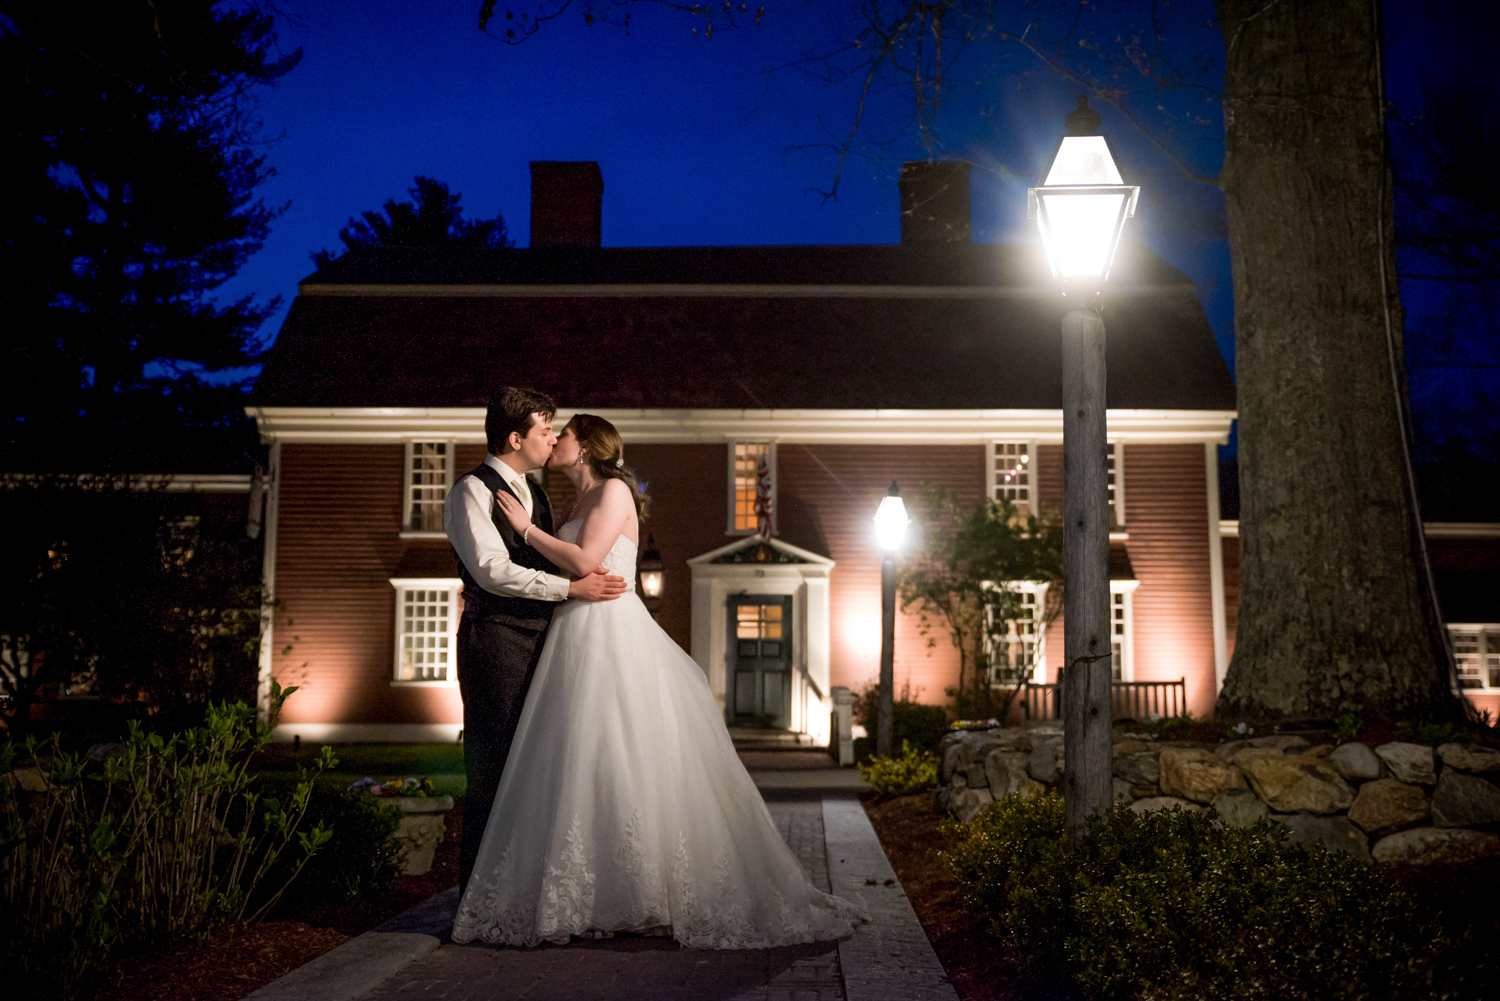 Leslie & Zachary - Wayside Inn Wedding